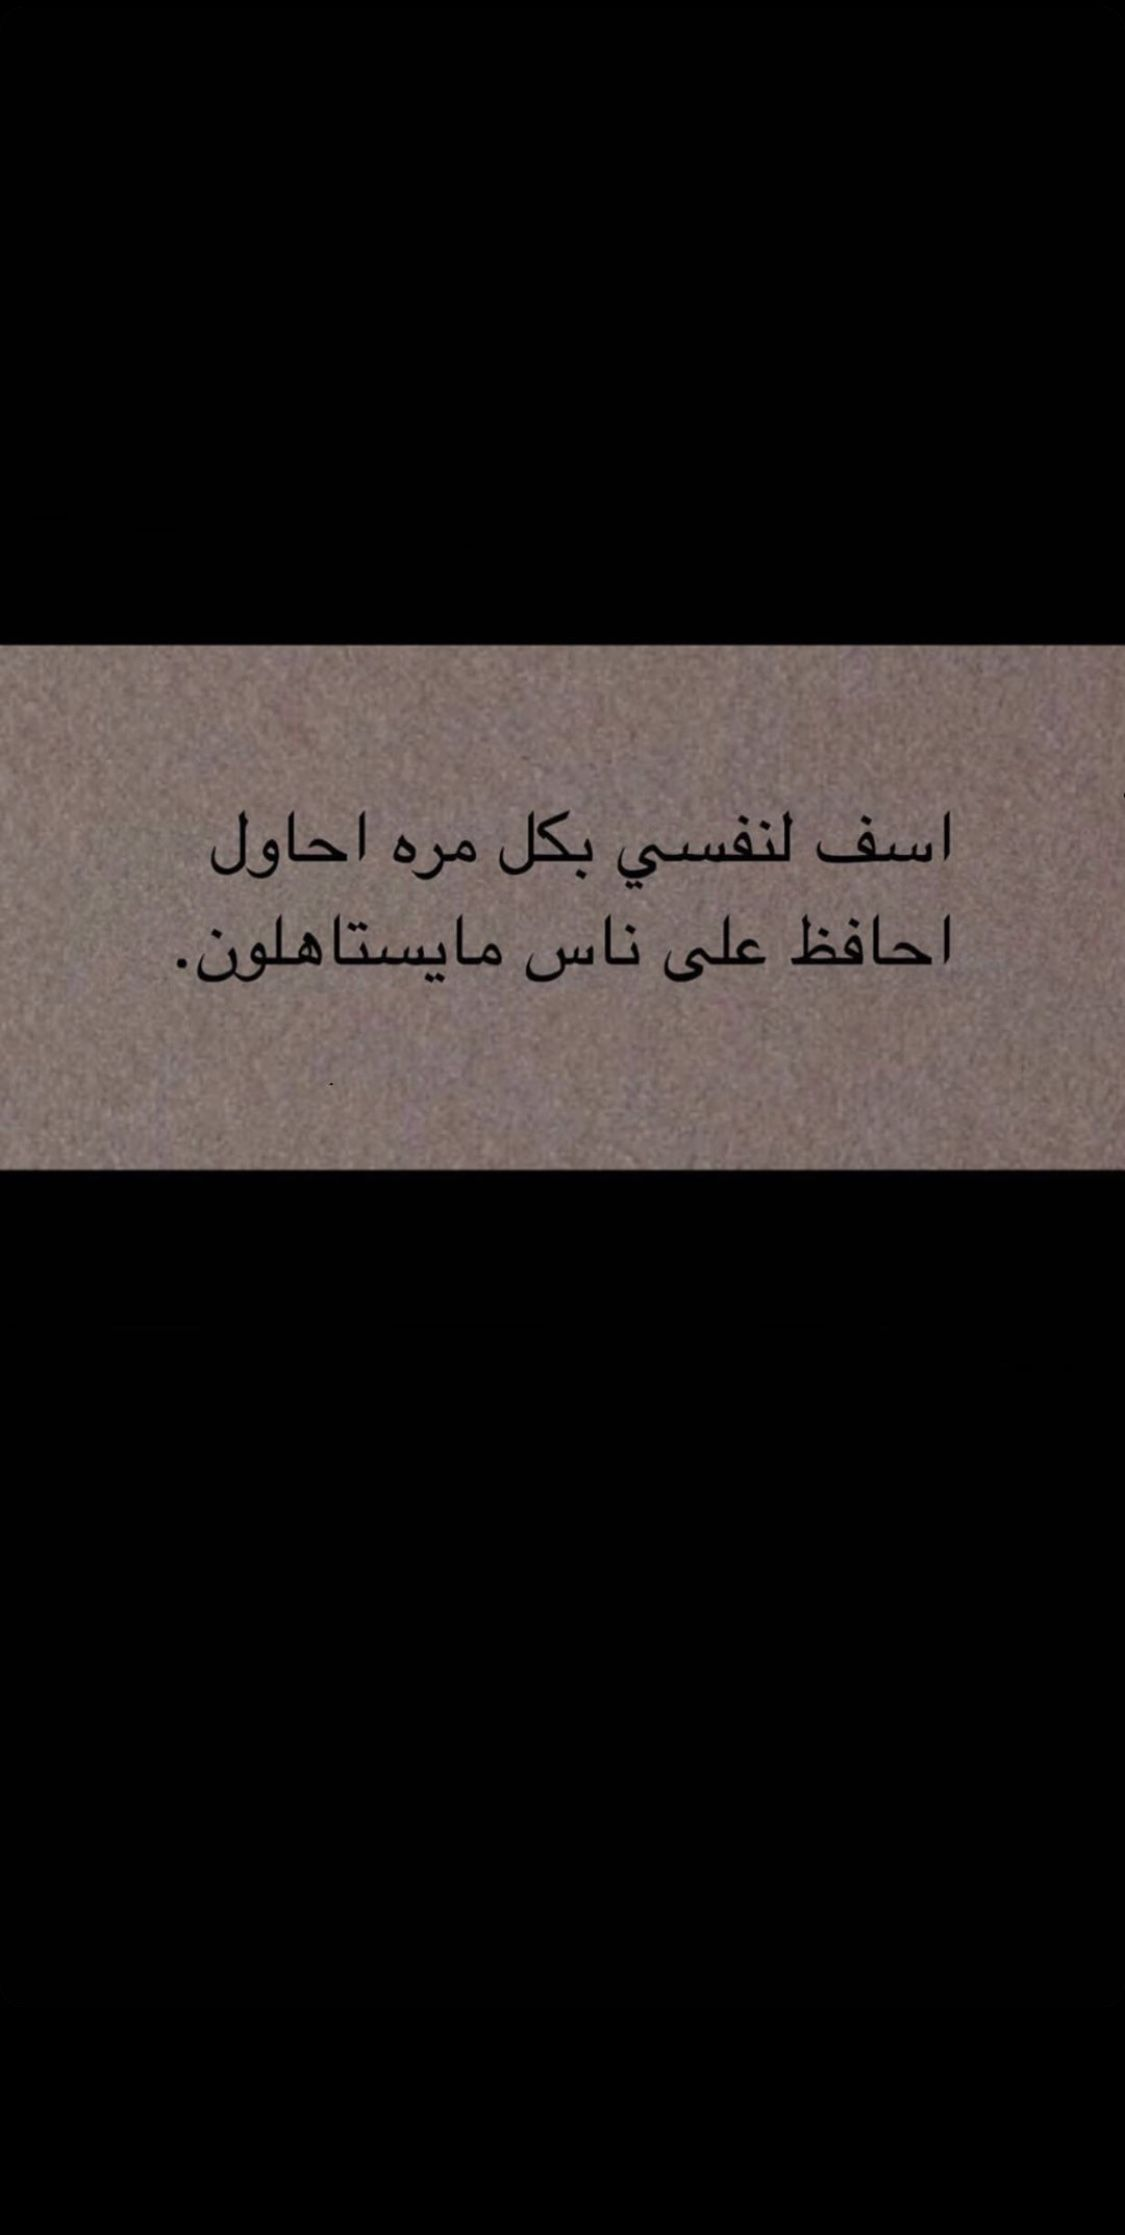 Pin By Majdalanazi On م ـخت ـاراتي Good Day Quotes Laughing Quotes Talking Quotes